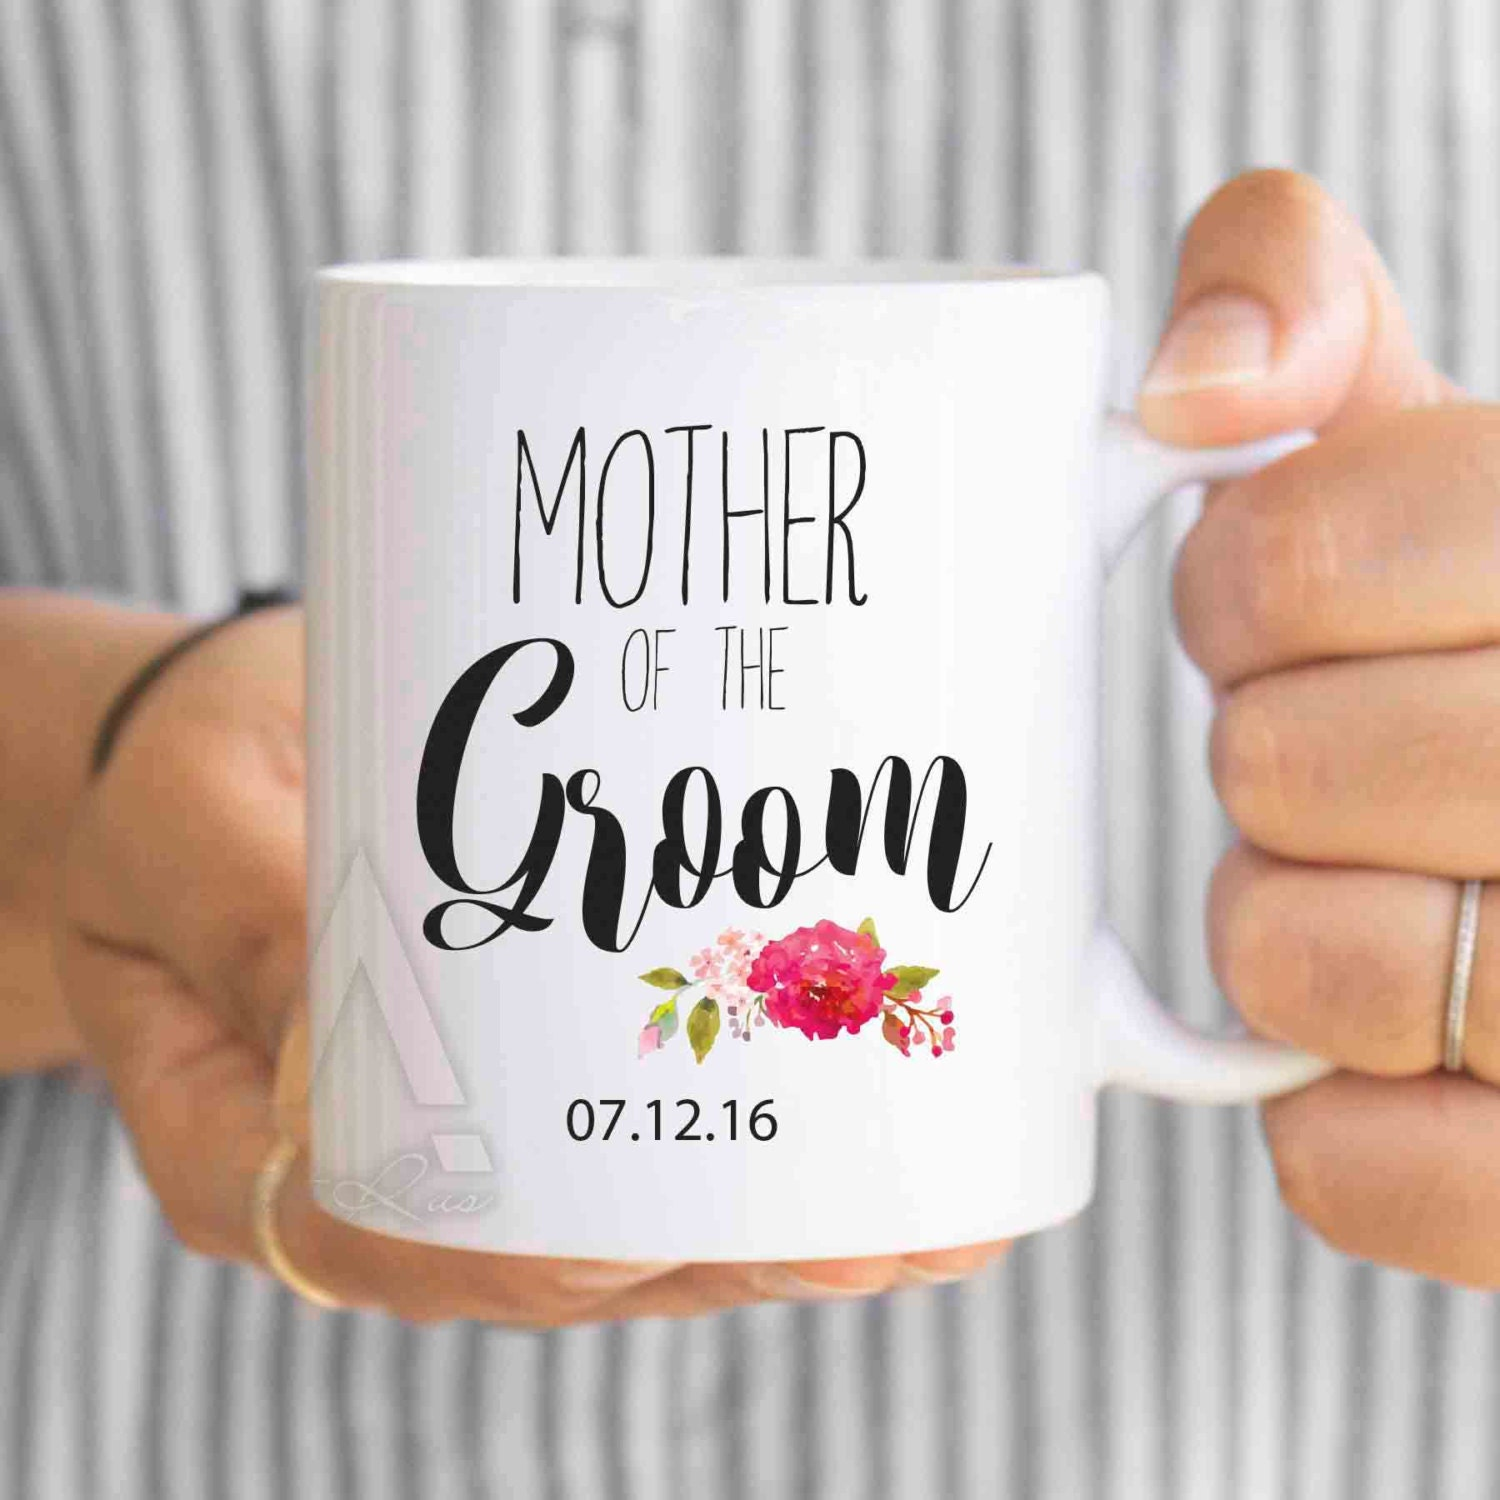 Bride To Groom Wedding Gifts: Wedding Gifts Mother Of The Groom Gift Wedding Gifts By